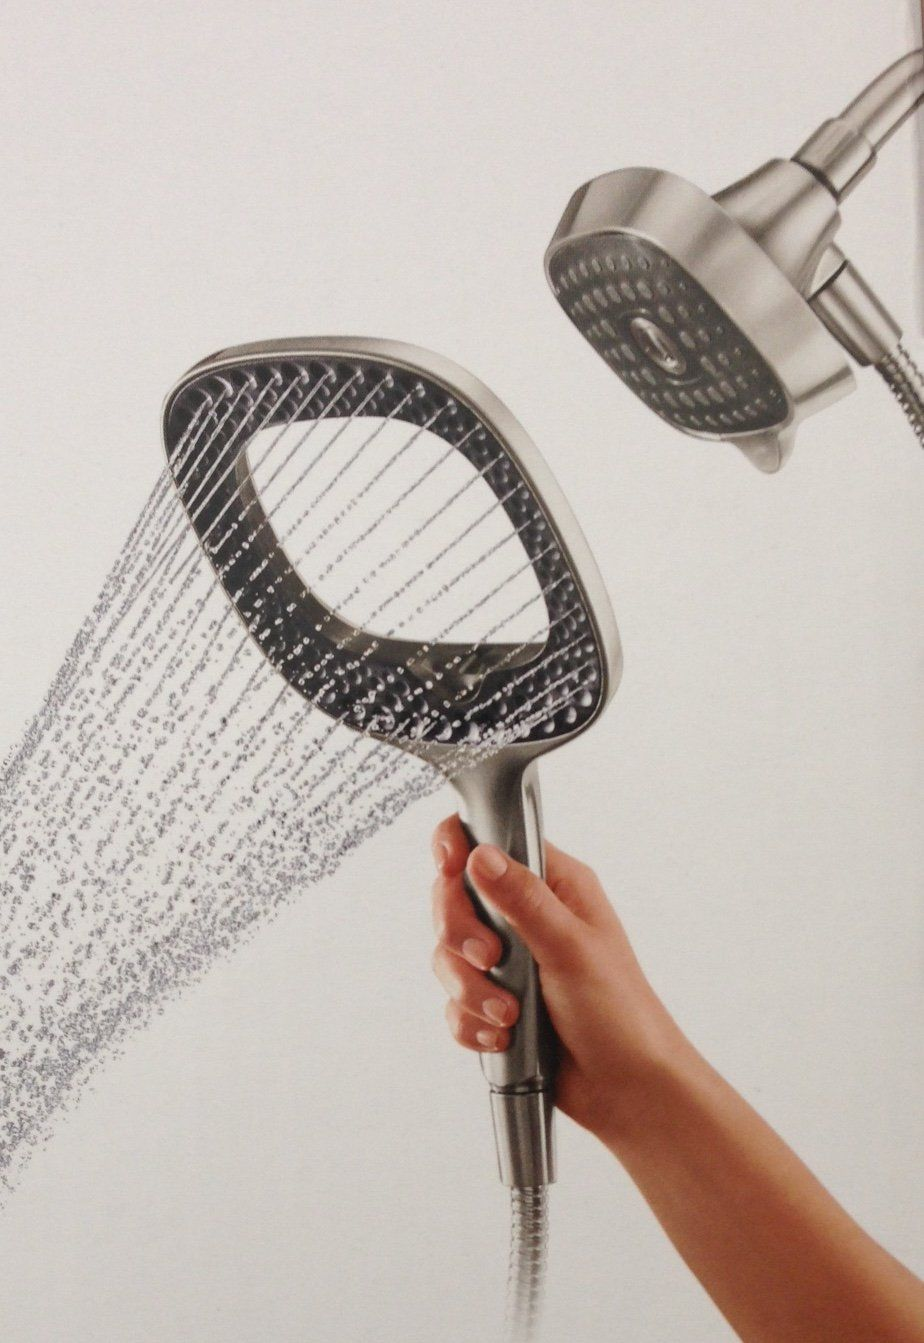 Kohler R77634 Converge 5 Spray Handheld Shower Head Combo With